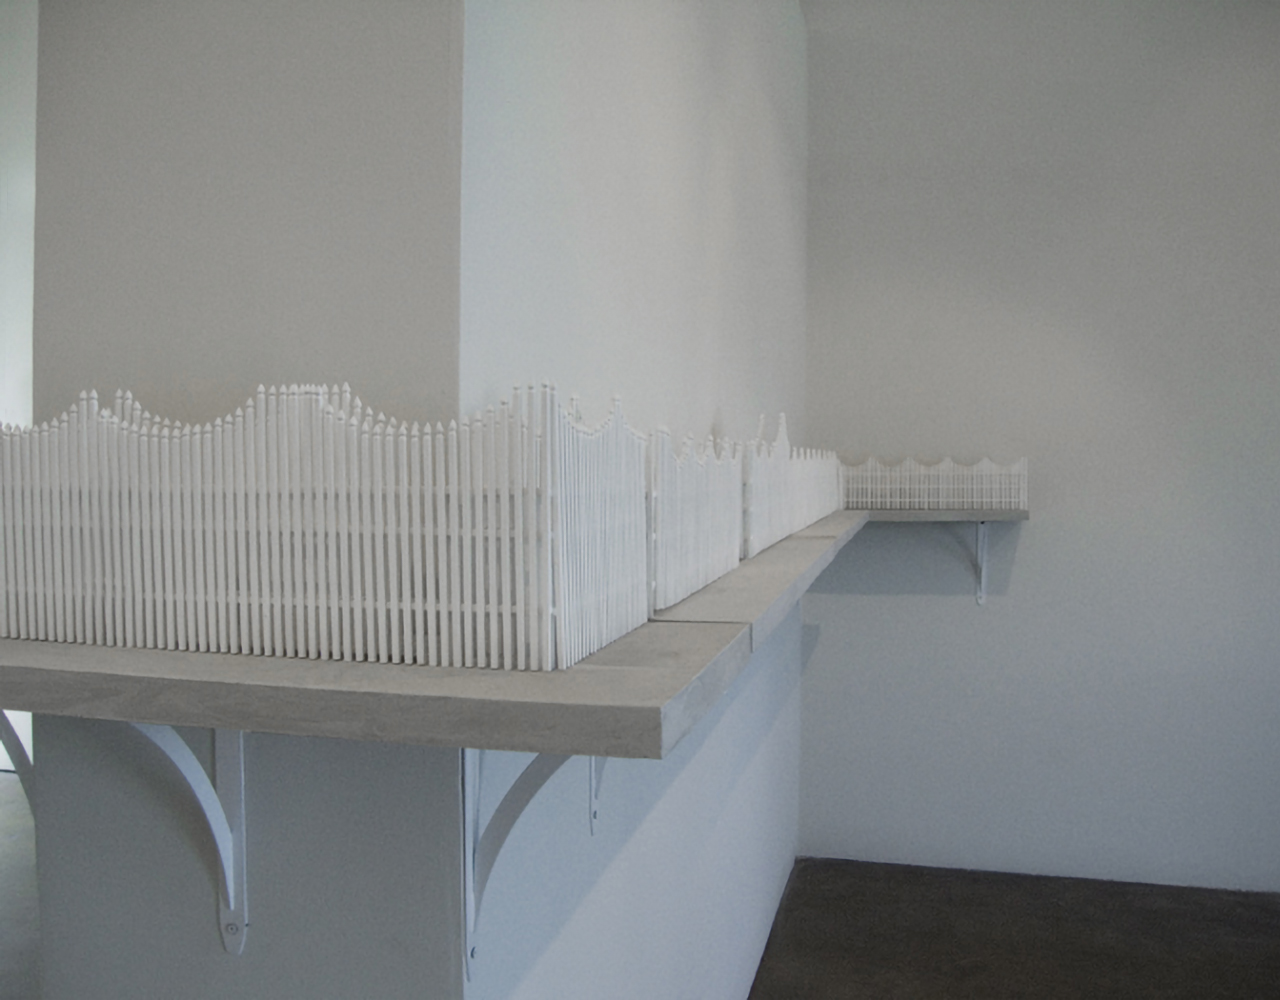 Installation view (detail),  Fence  exhibition, Eye Lounge Gallery, Phoenix, AZ, 2007